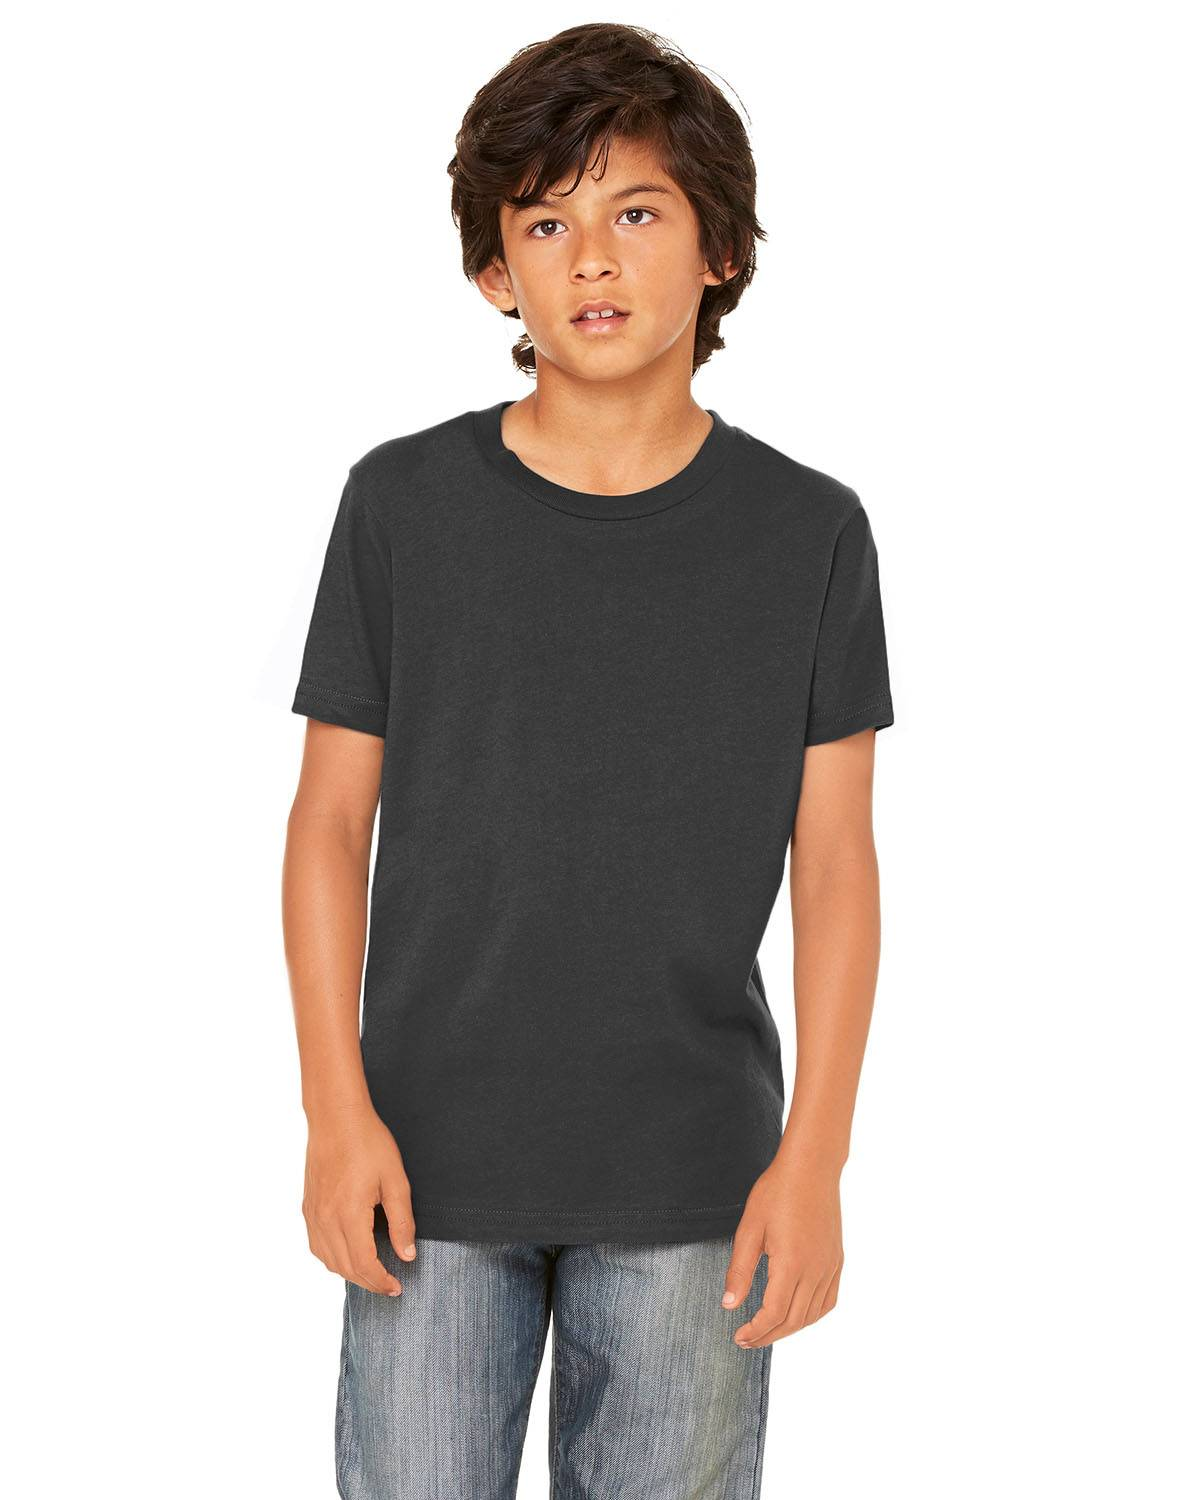 Bella + Canvas Youth Jersey T-Shirt | 3001Y